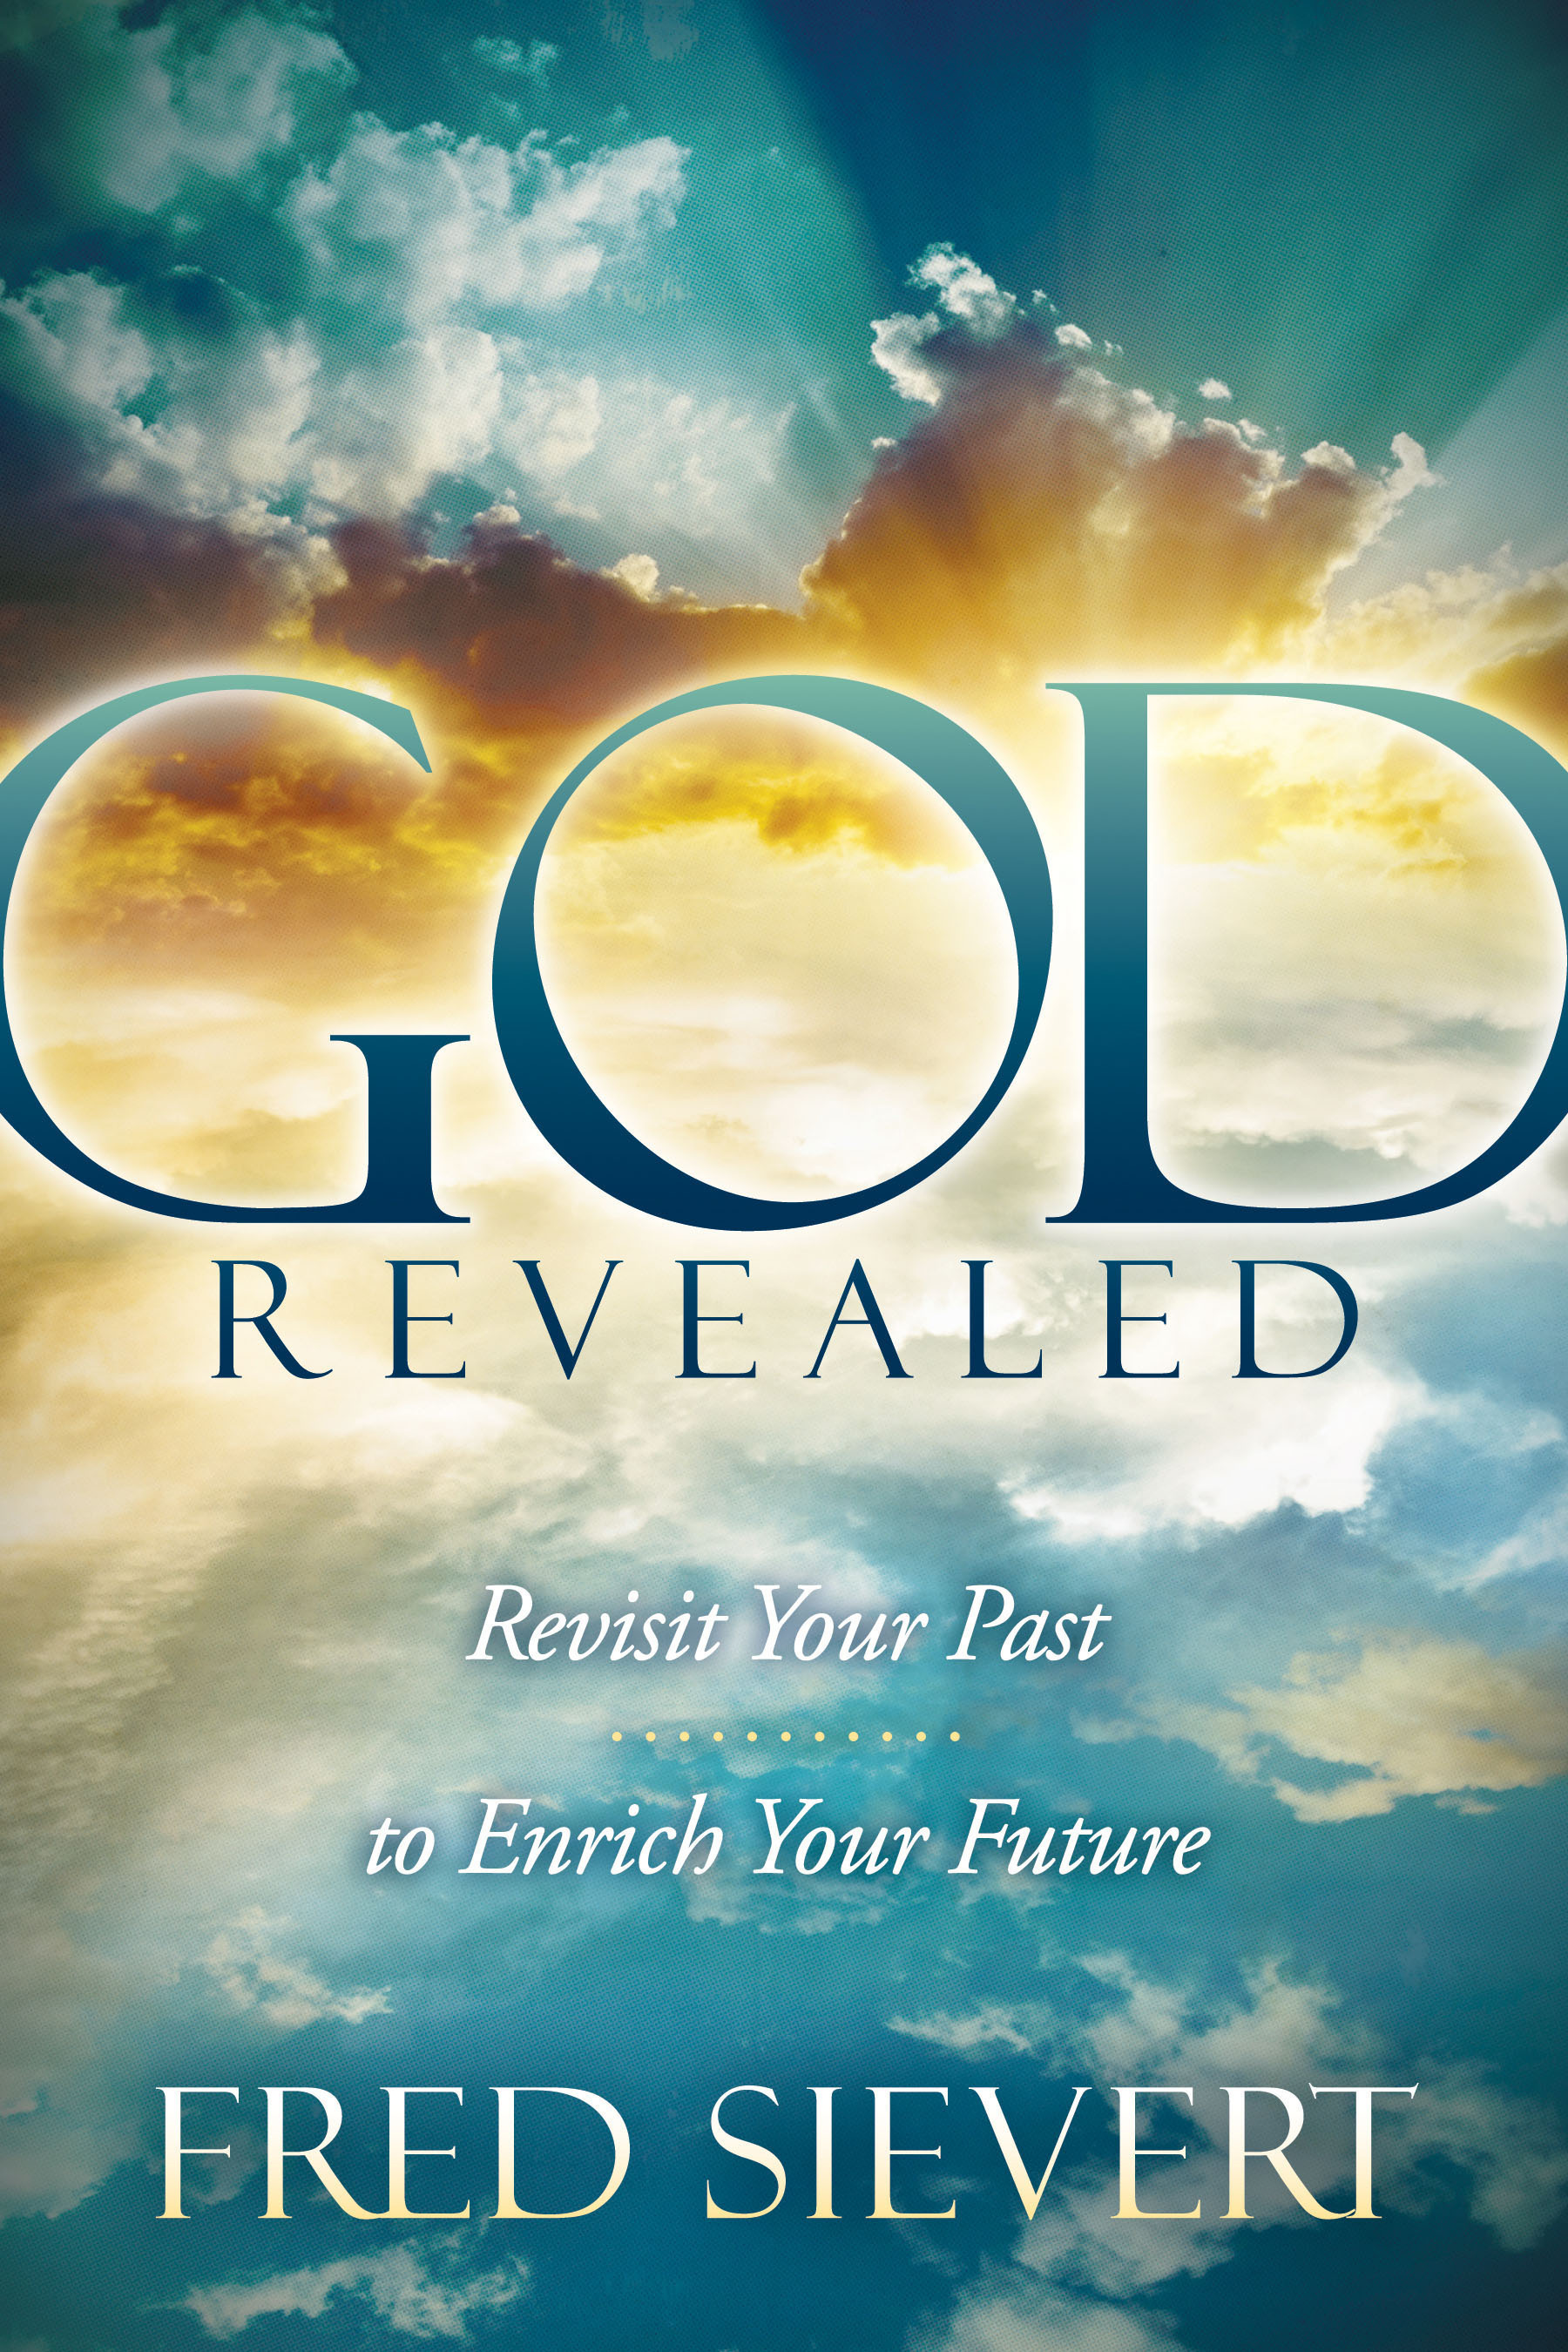 GOD REVEALED Challenges Christians To Apply Their Faith In God